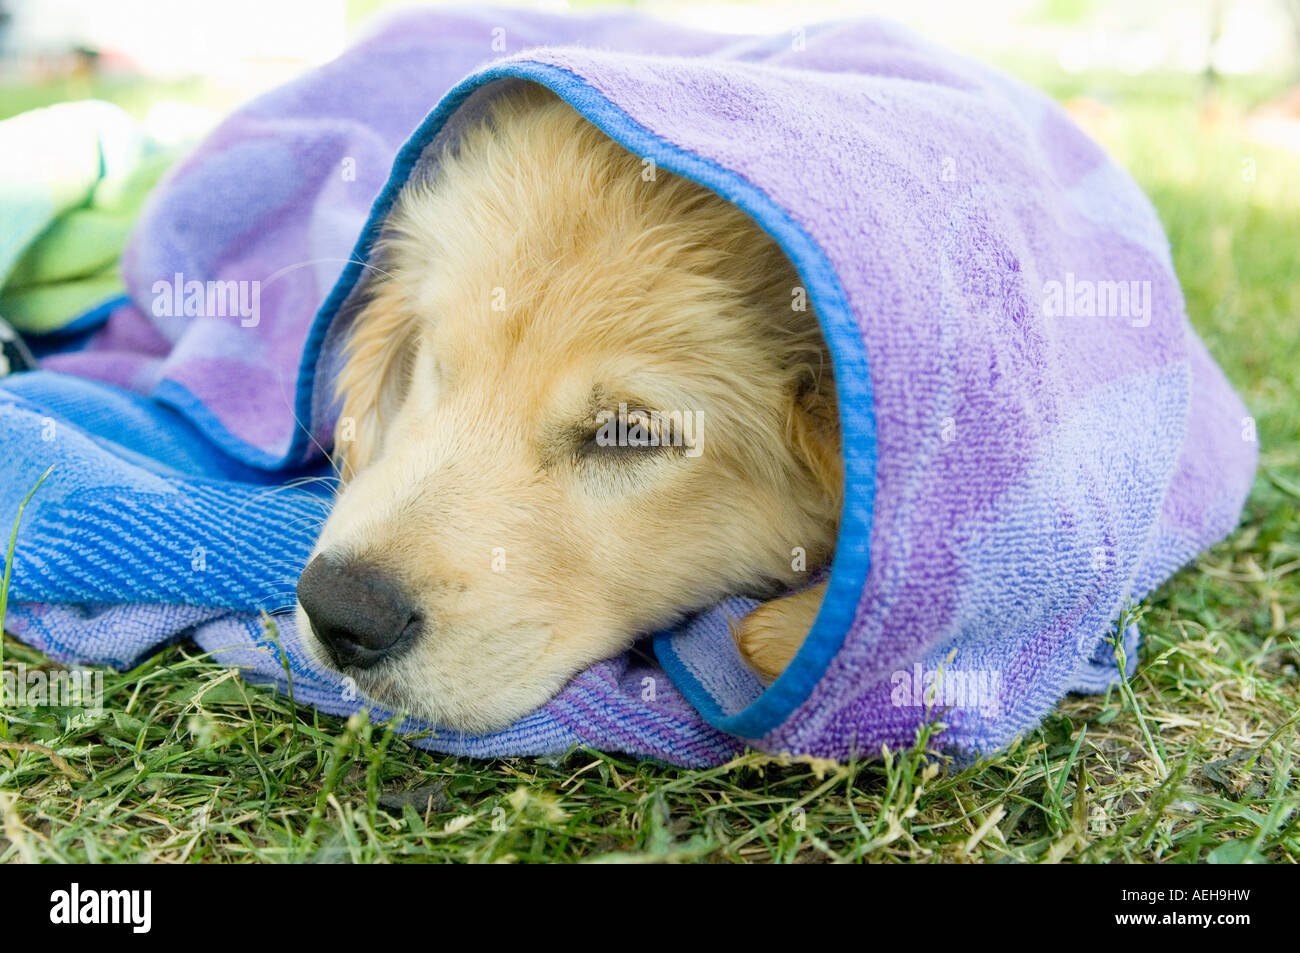 A puppy sleeping wrapped up in a beach towel. - Stock Image